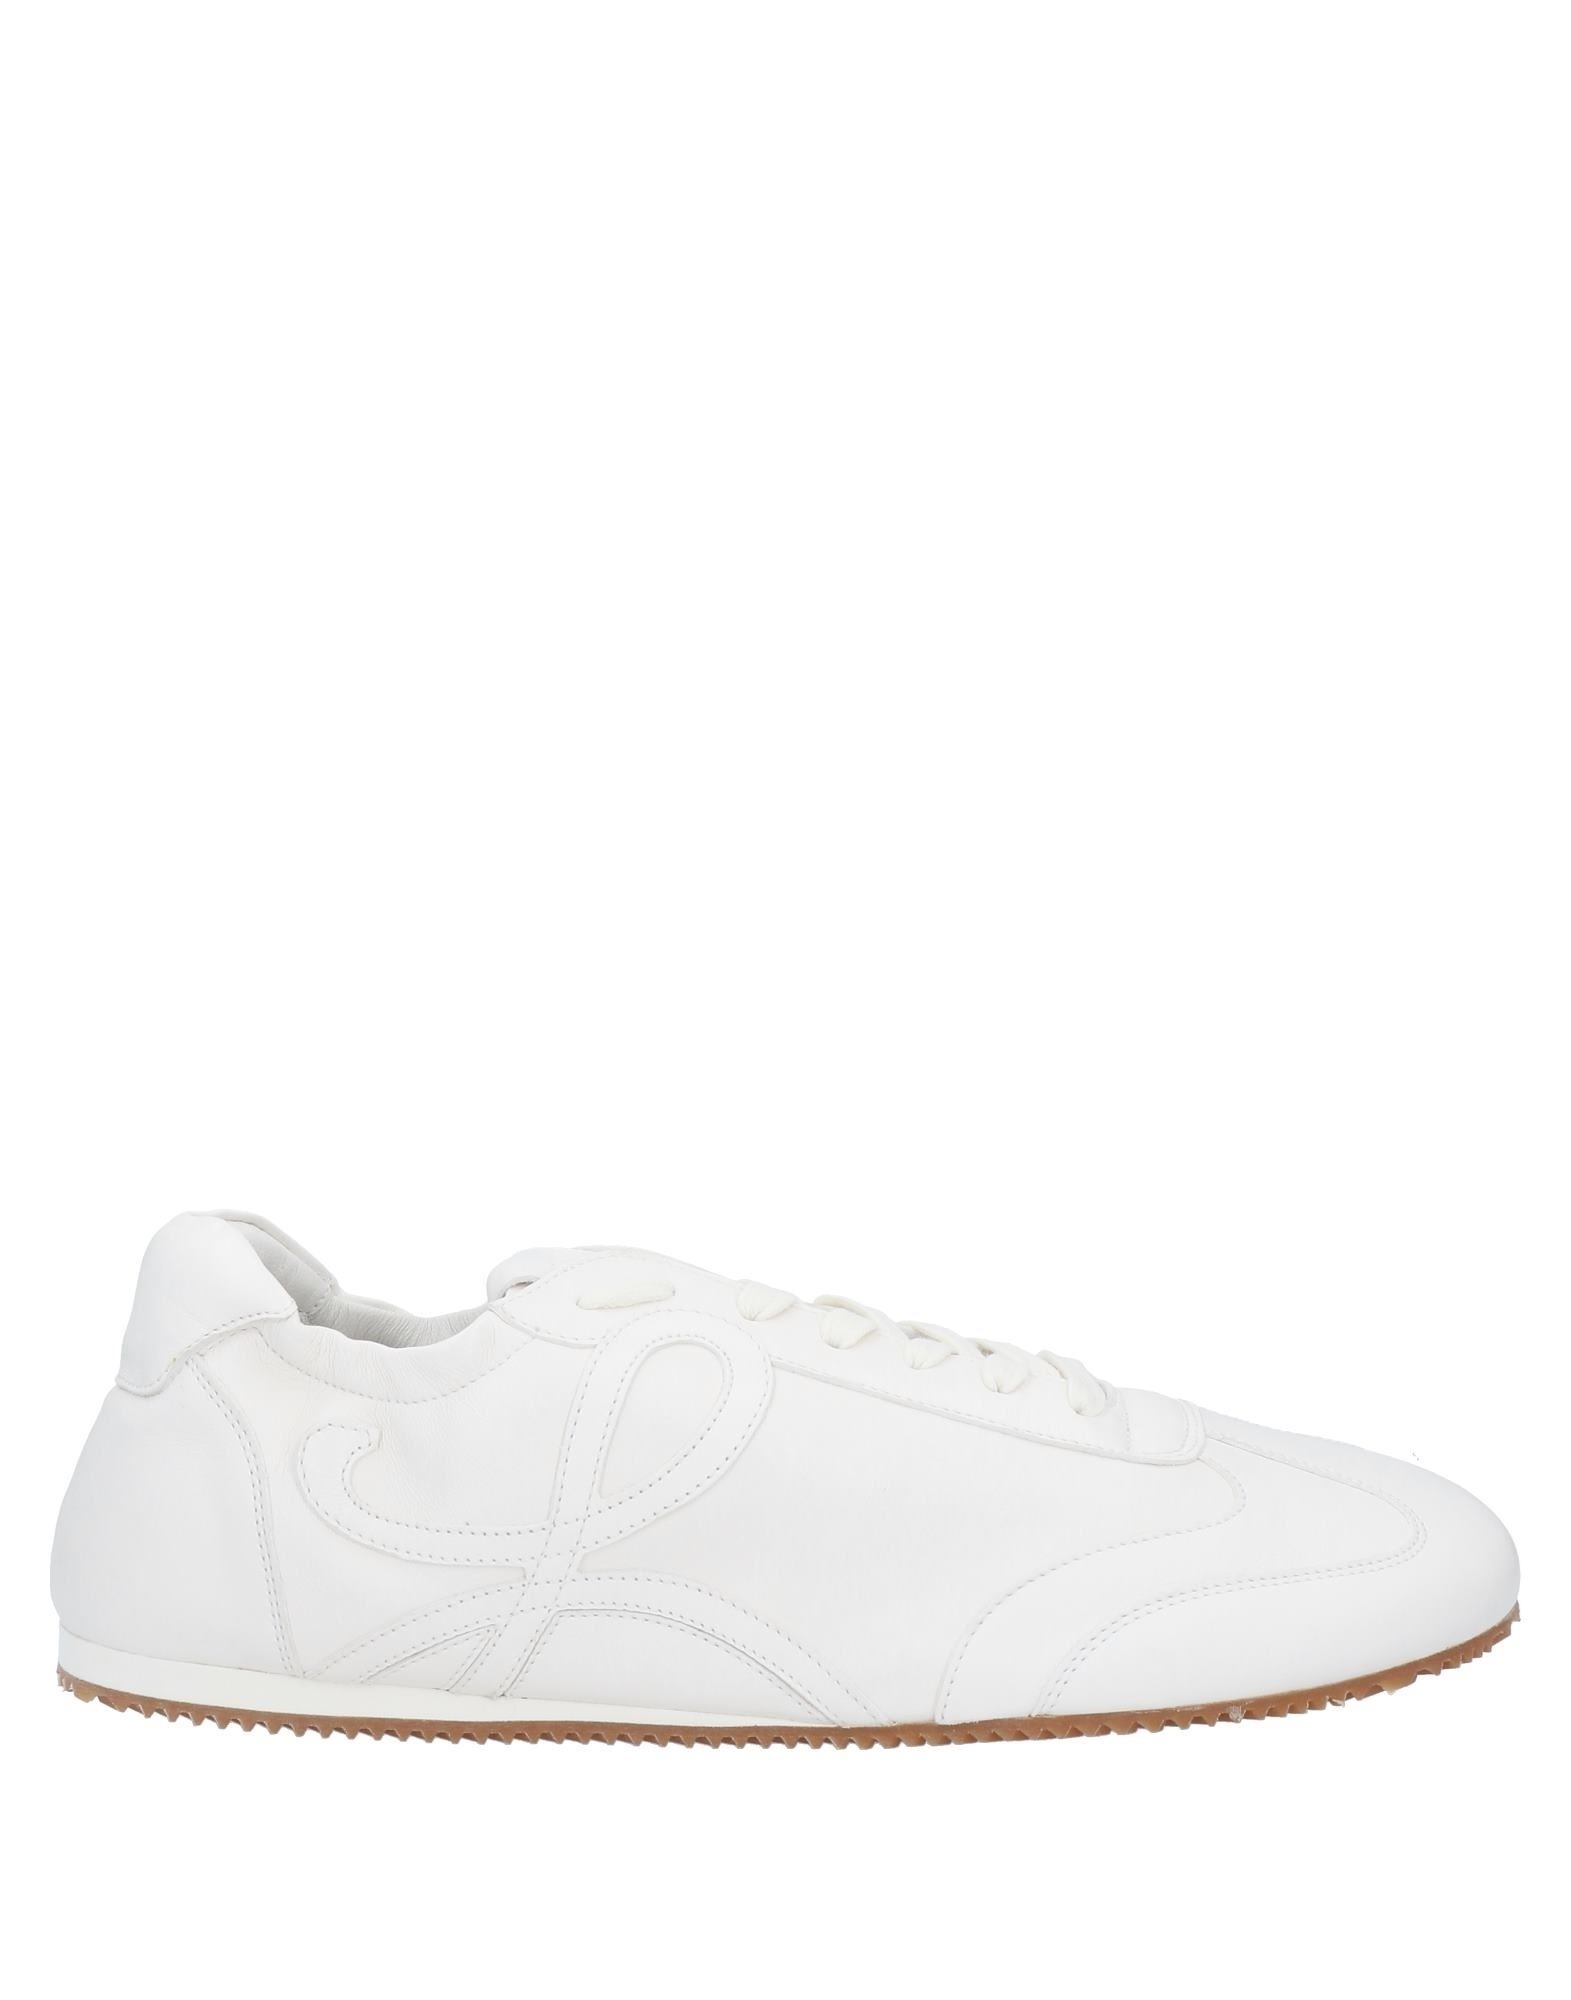 LOEWE Sneakers. leather, stitching, logo, solid color, laces, round toeline, flat, leather lining, rubber sole, contains non-textile parts of animal origin. Soft Leather